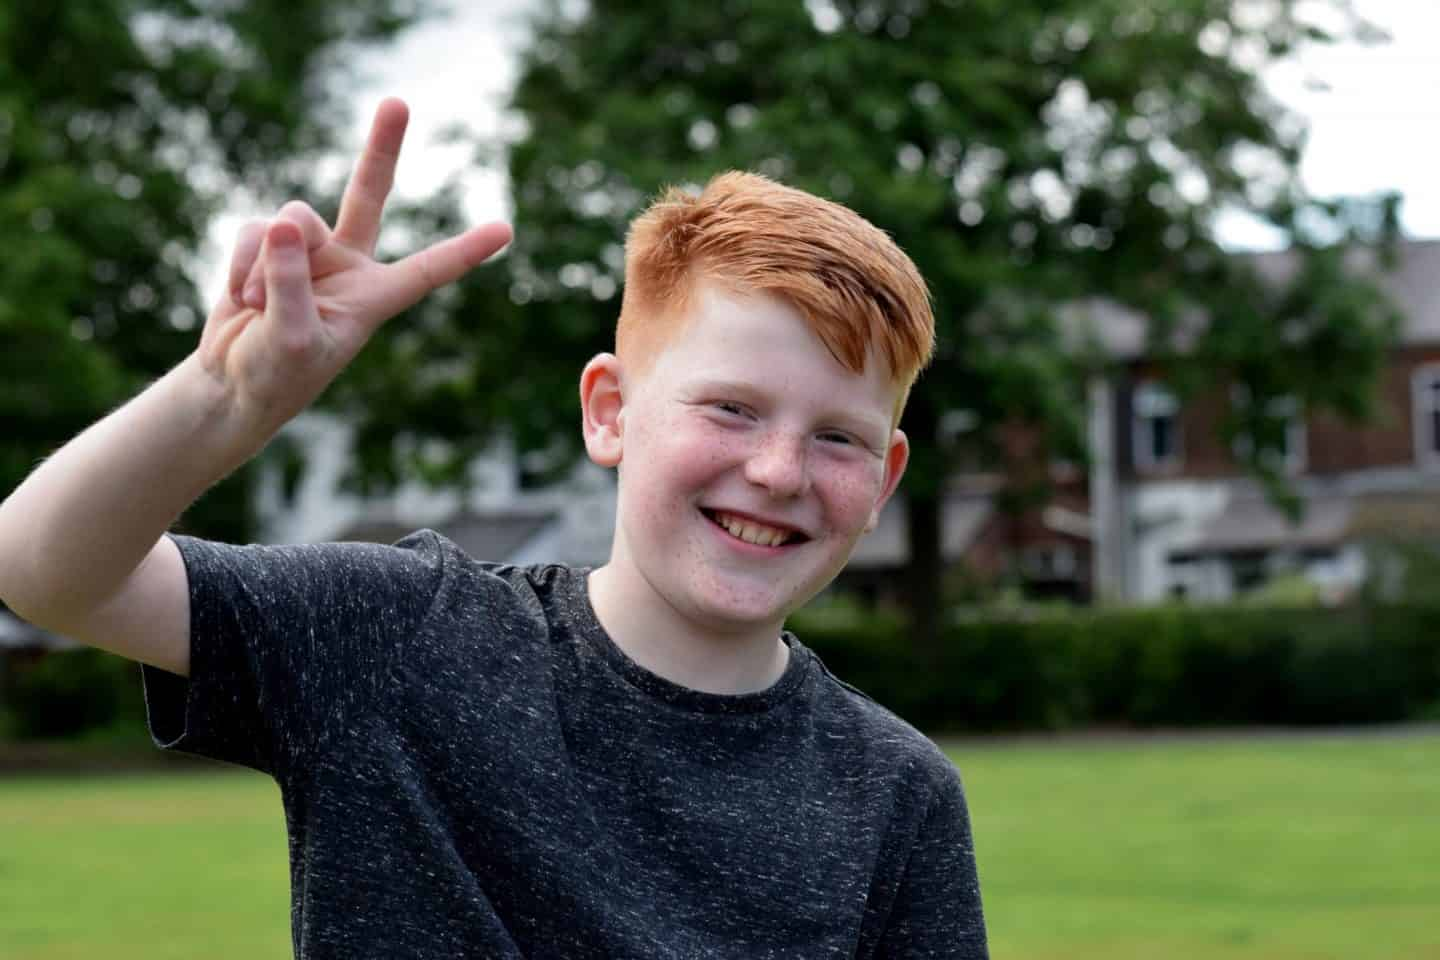 Steps towards independence for our tween